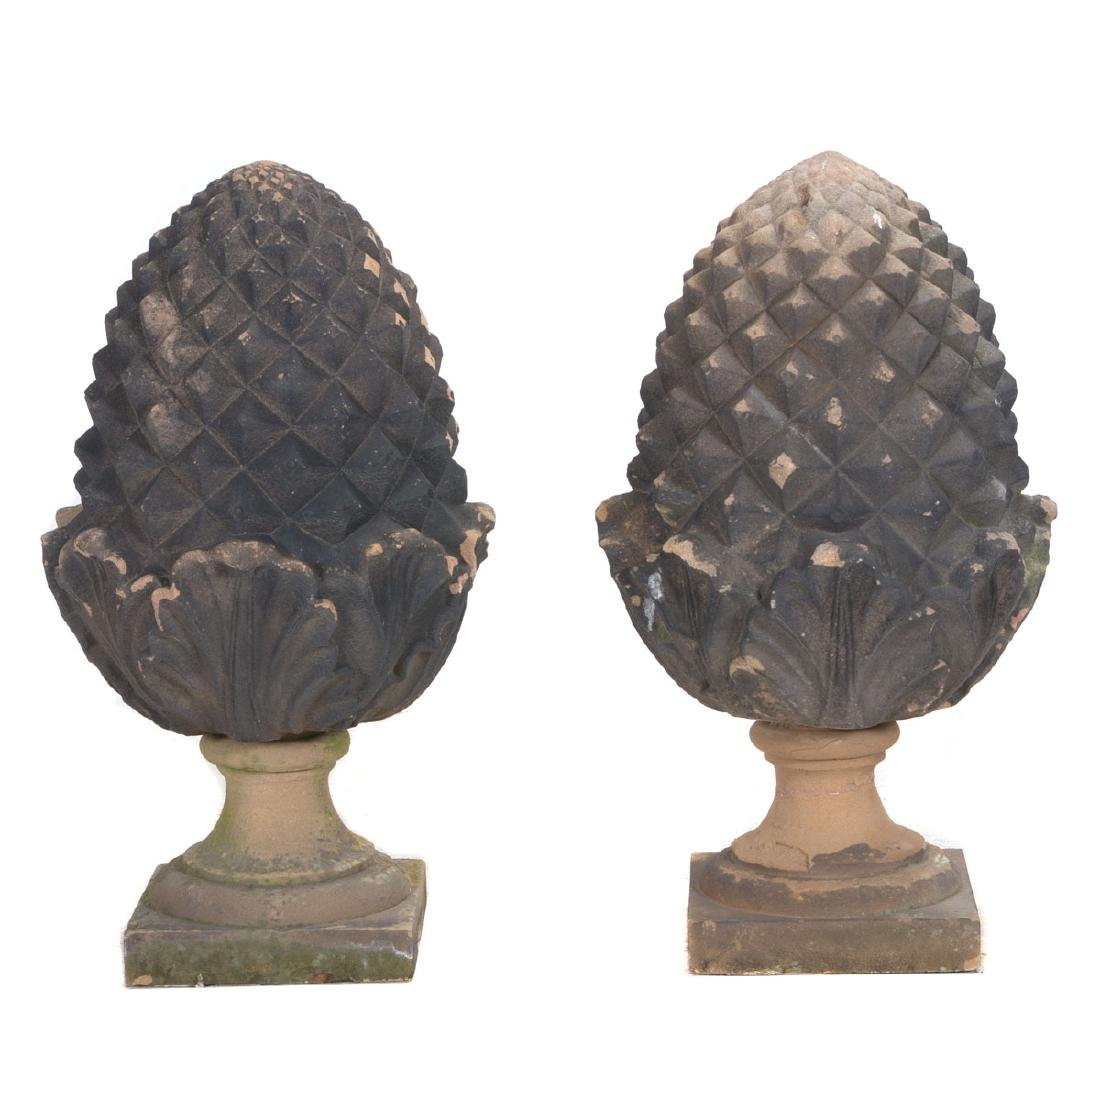 Pair of English Carved Red Sandstone Pine Cone Finials.